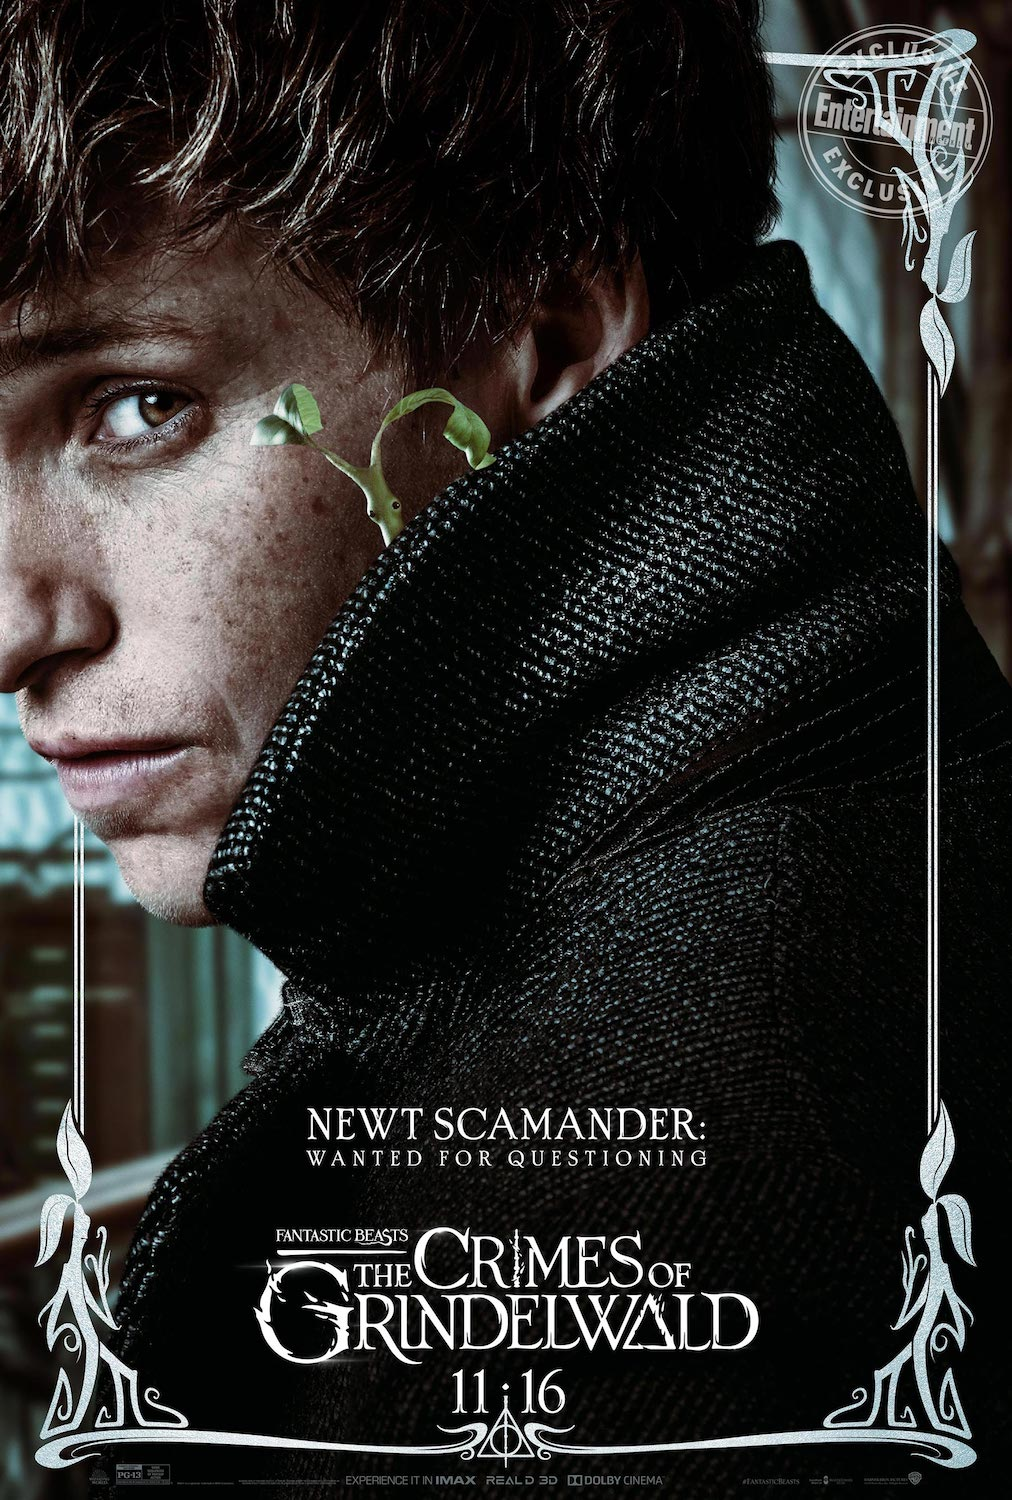 Newt Scamander is once again in trouble with the authorities, but is it beast related? Or something to do with a certain Dark wizard?